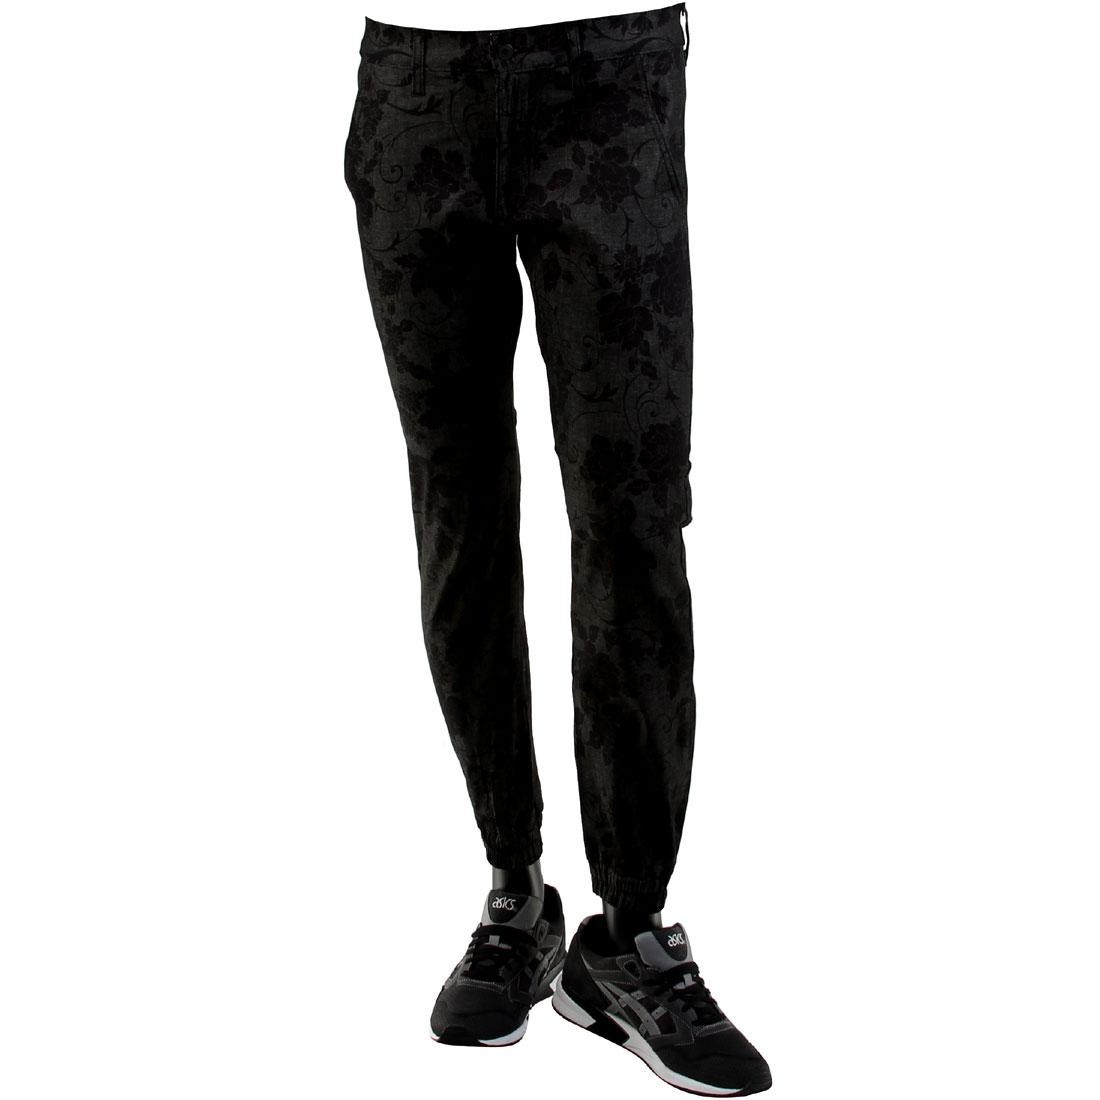 Kennedy Denim Co The Weekend Jogger Pants (black / black floral)